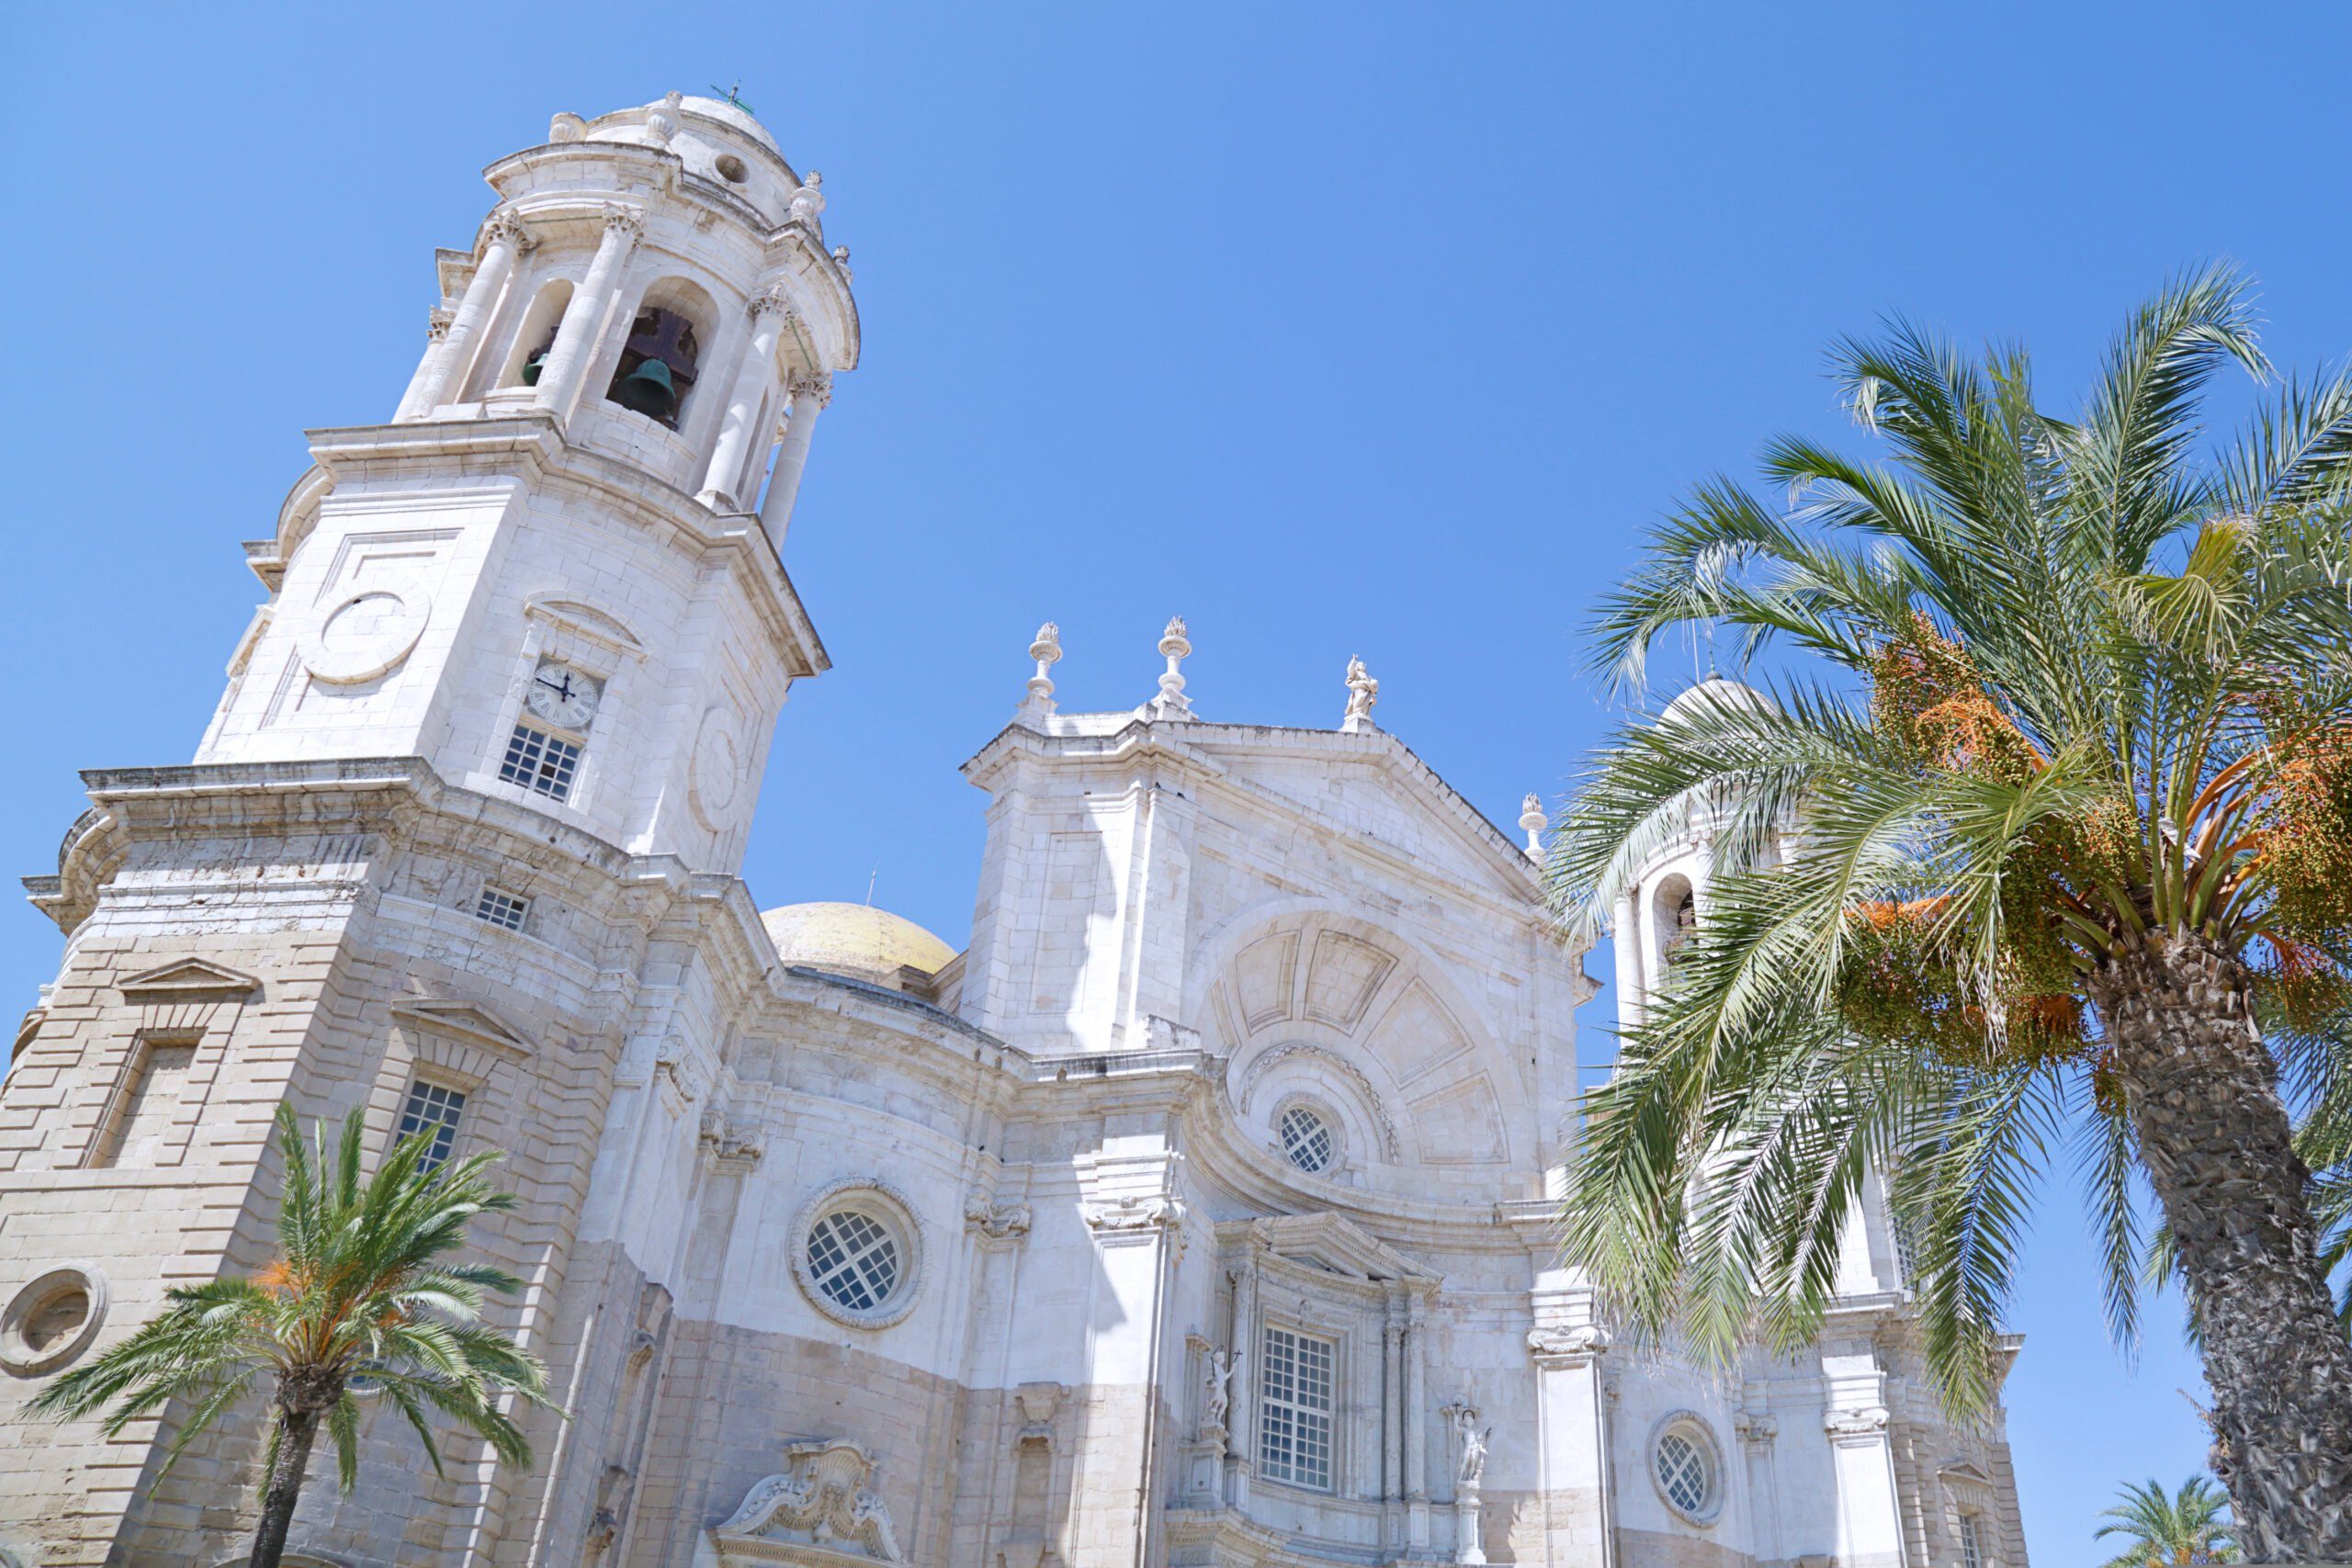 Discover The Landmarks Of Cadiz On The Cadiz & Jerez Sherry Tasting Tour From Seville